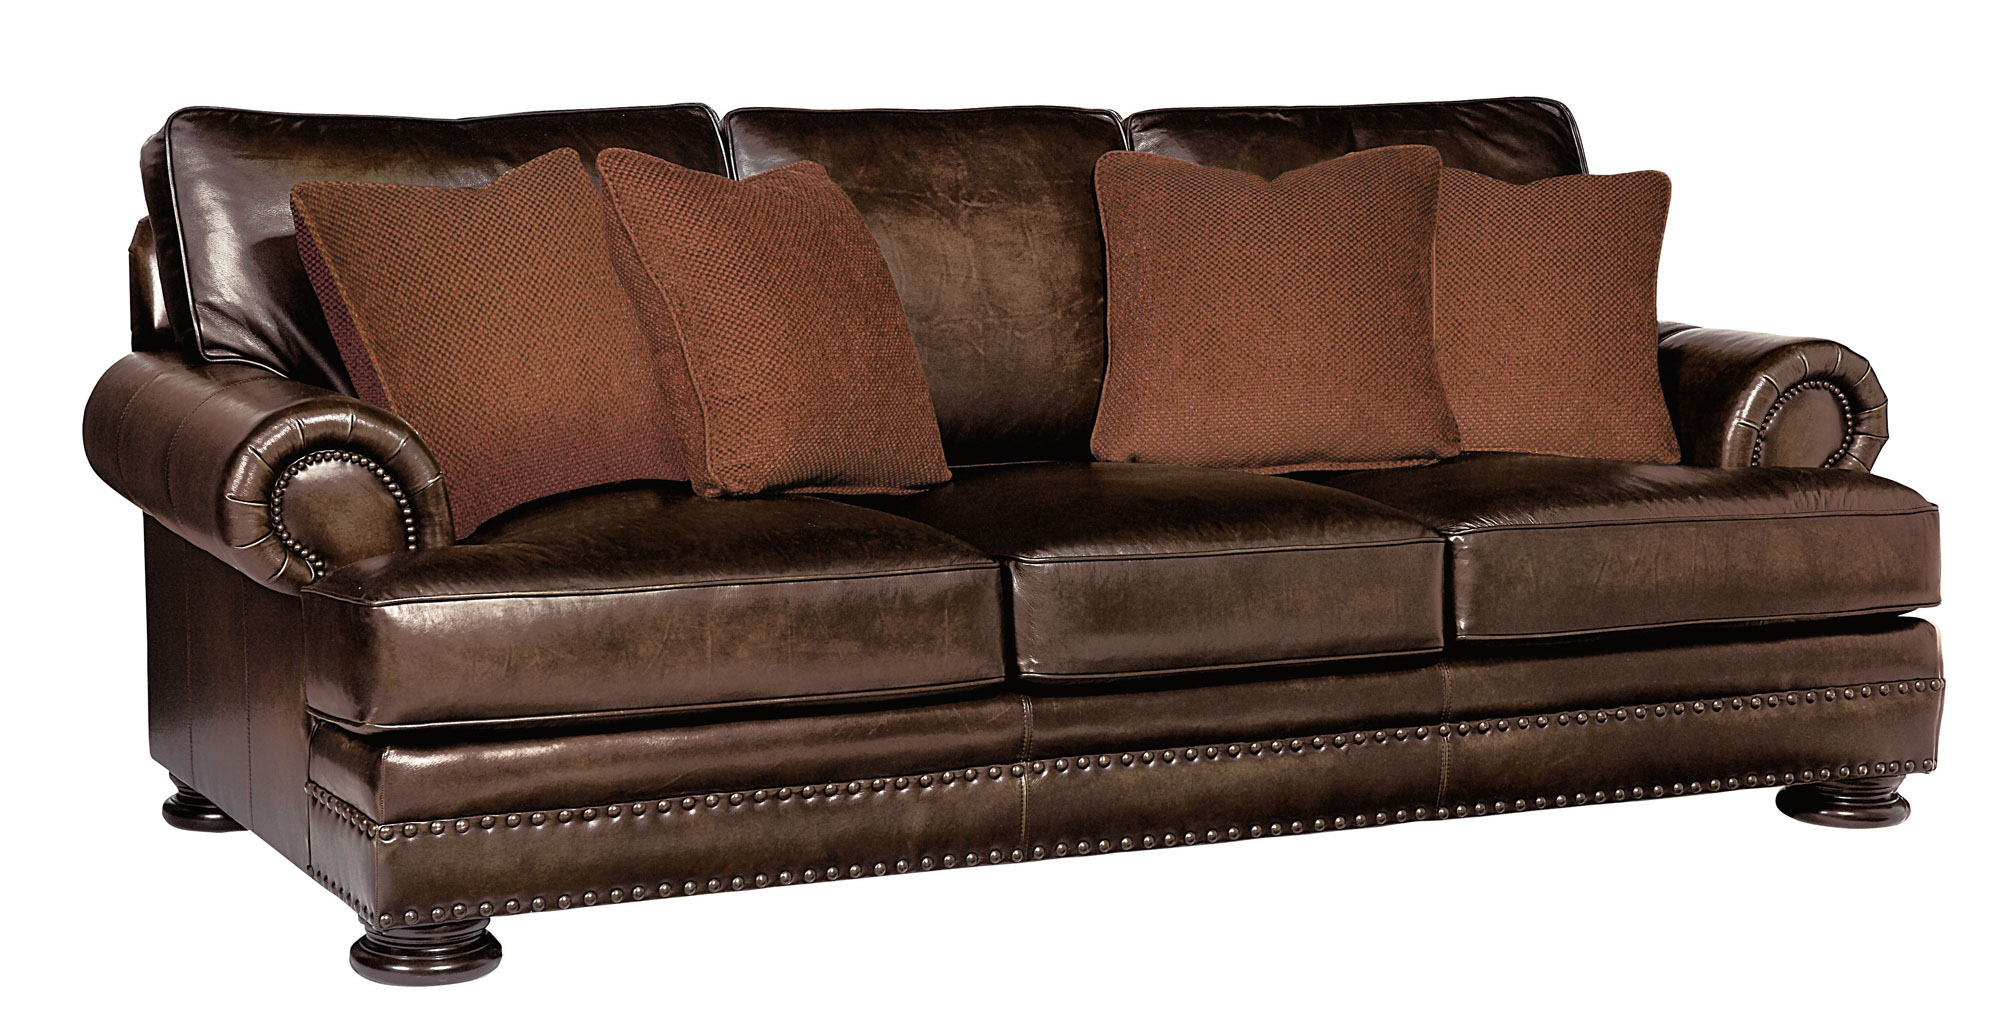 Karen 39 s corner leather furniture blog from hill for Bernhardt furniture